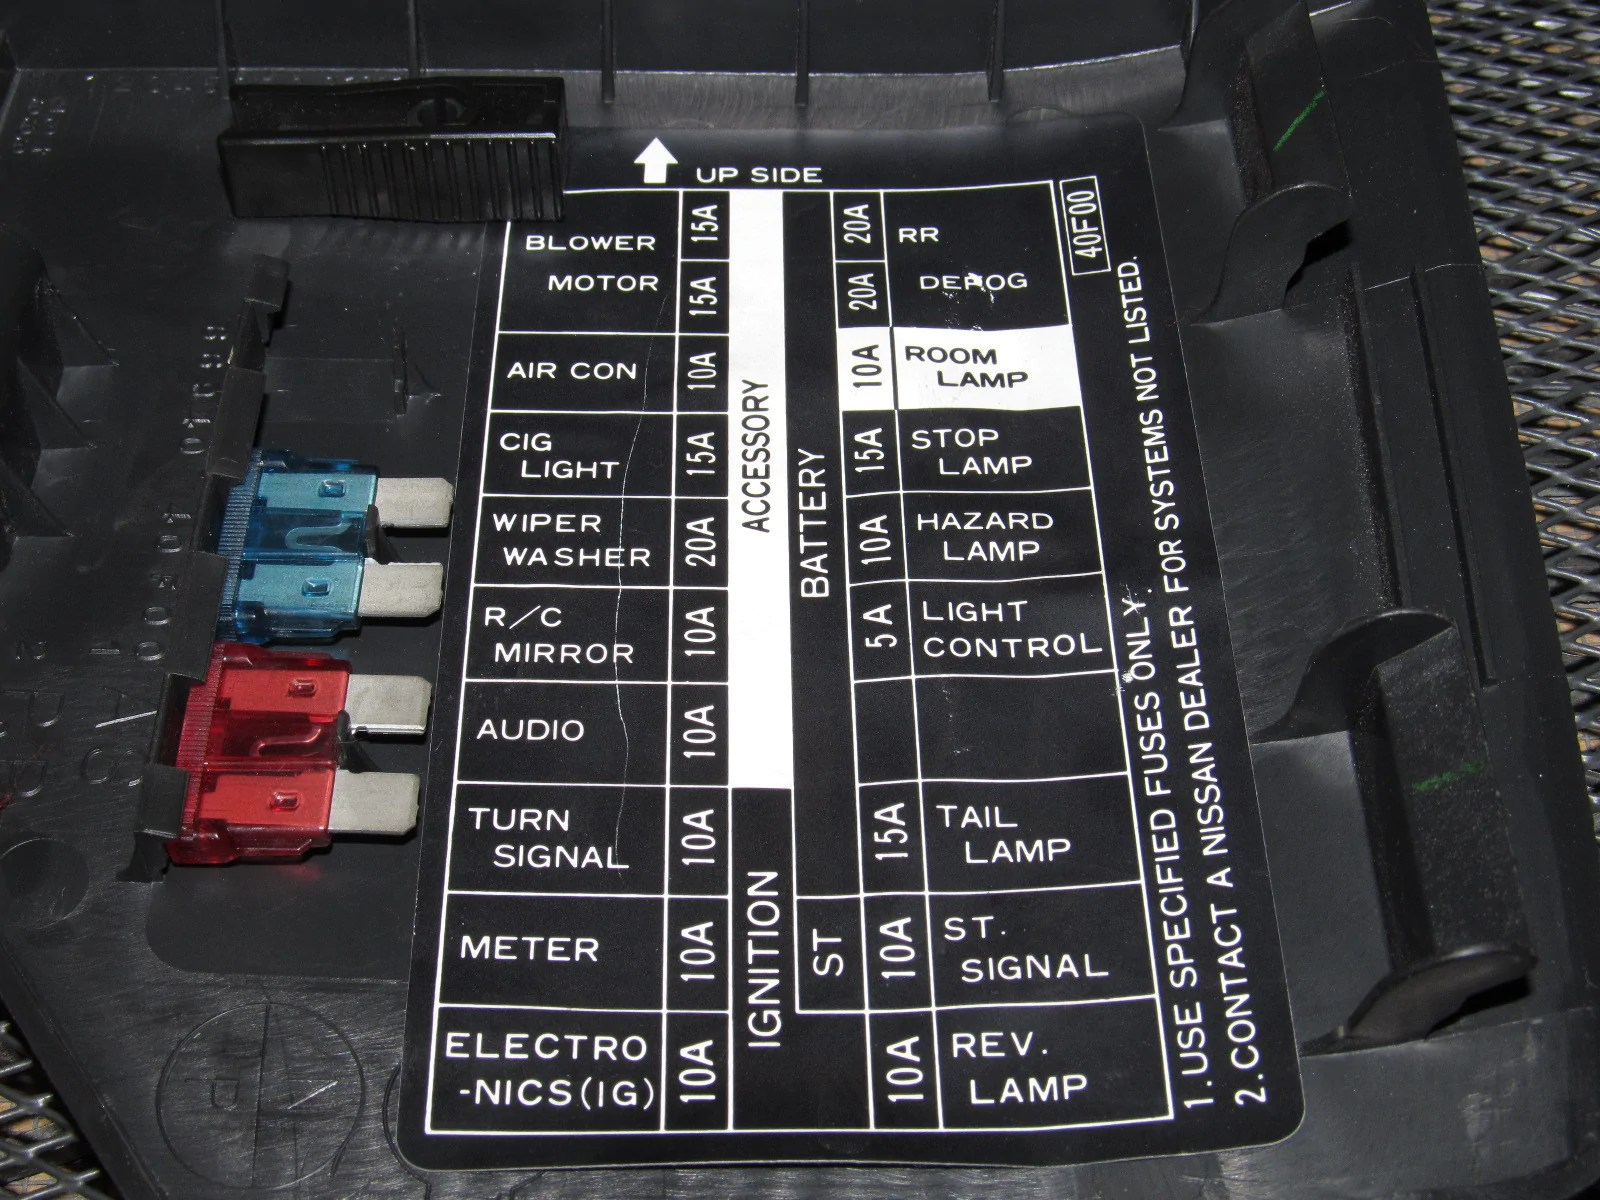 hight resolution of 90 240sx fuse box cover wiring diagrams scematic mazda 3 fuse box 240sx fuse box